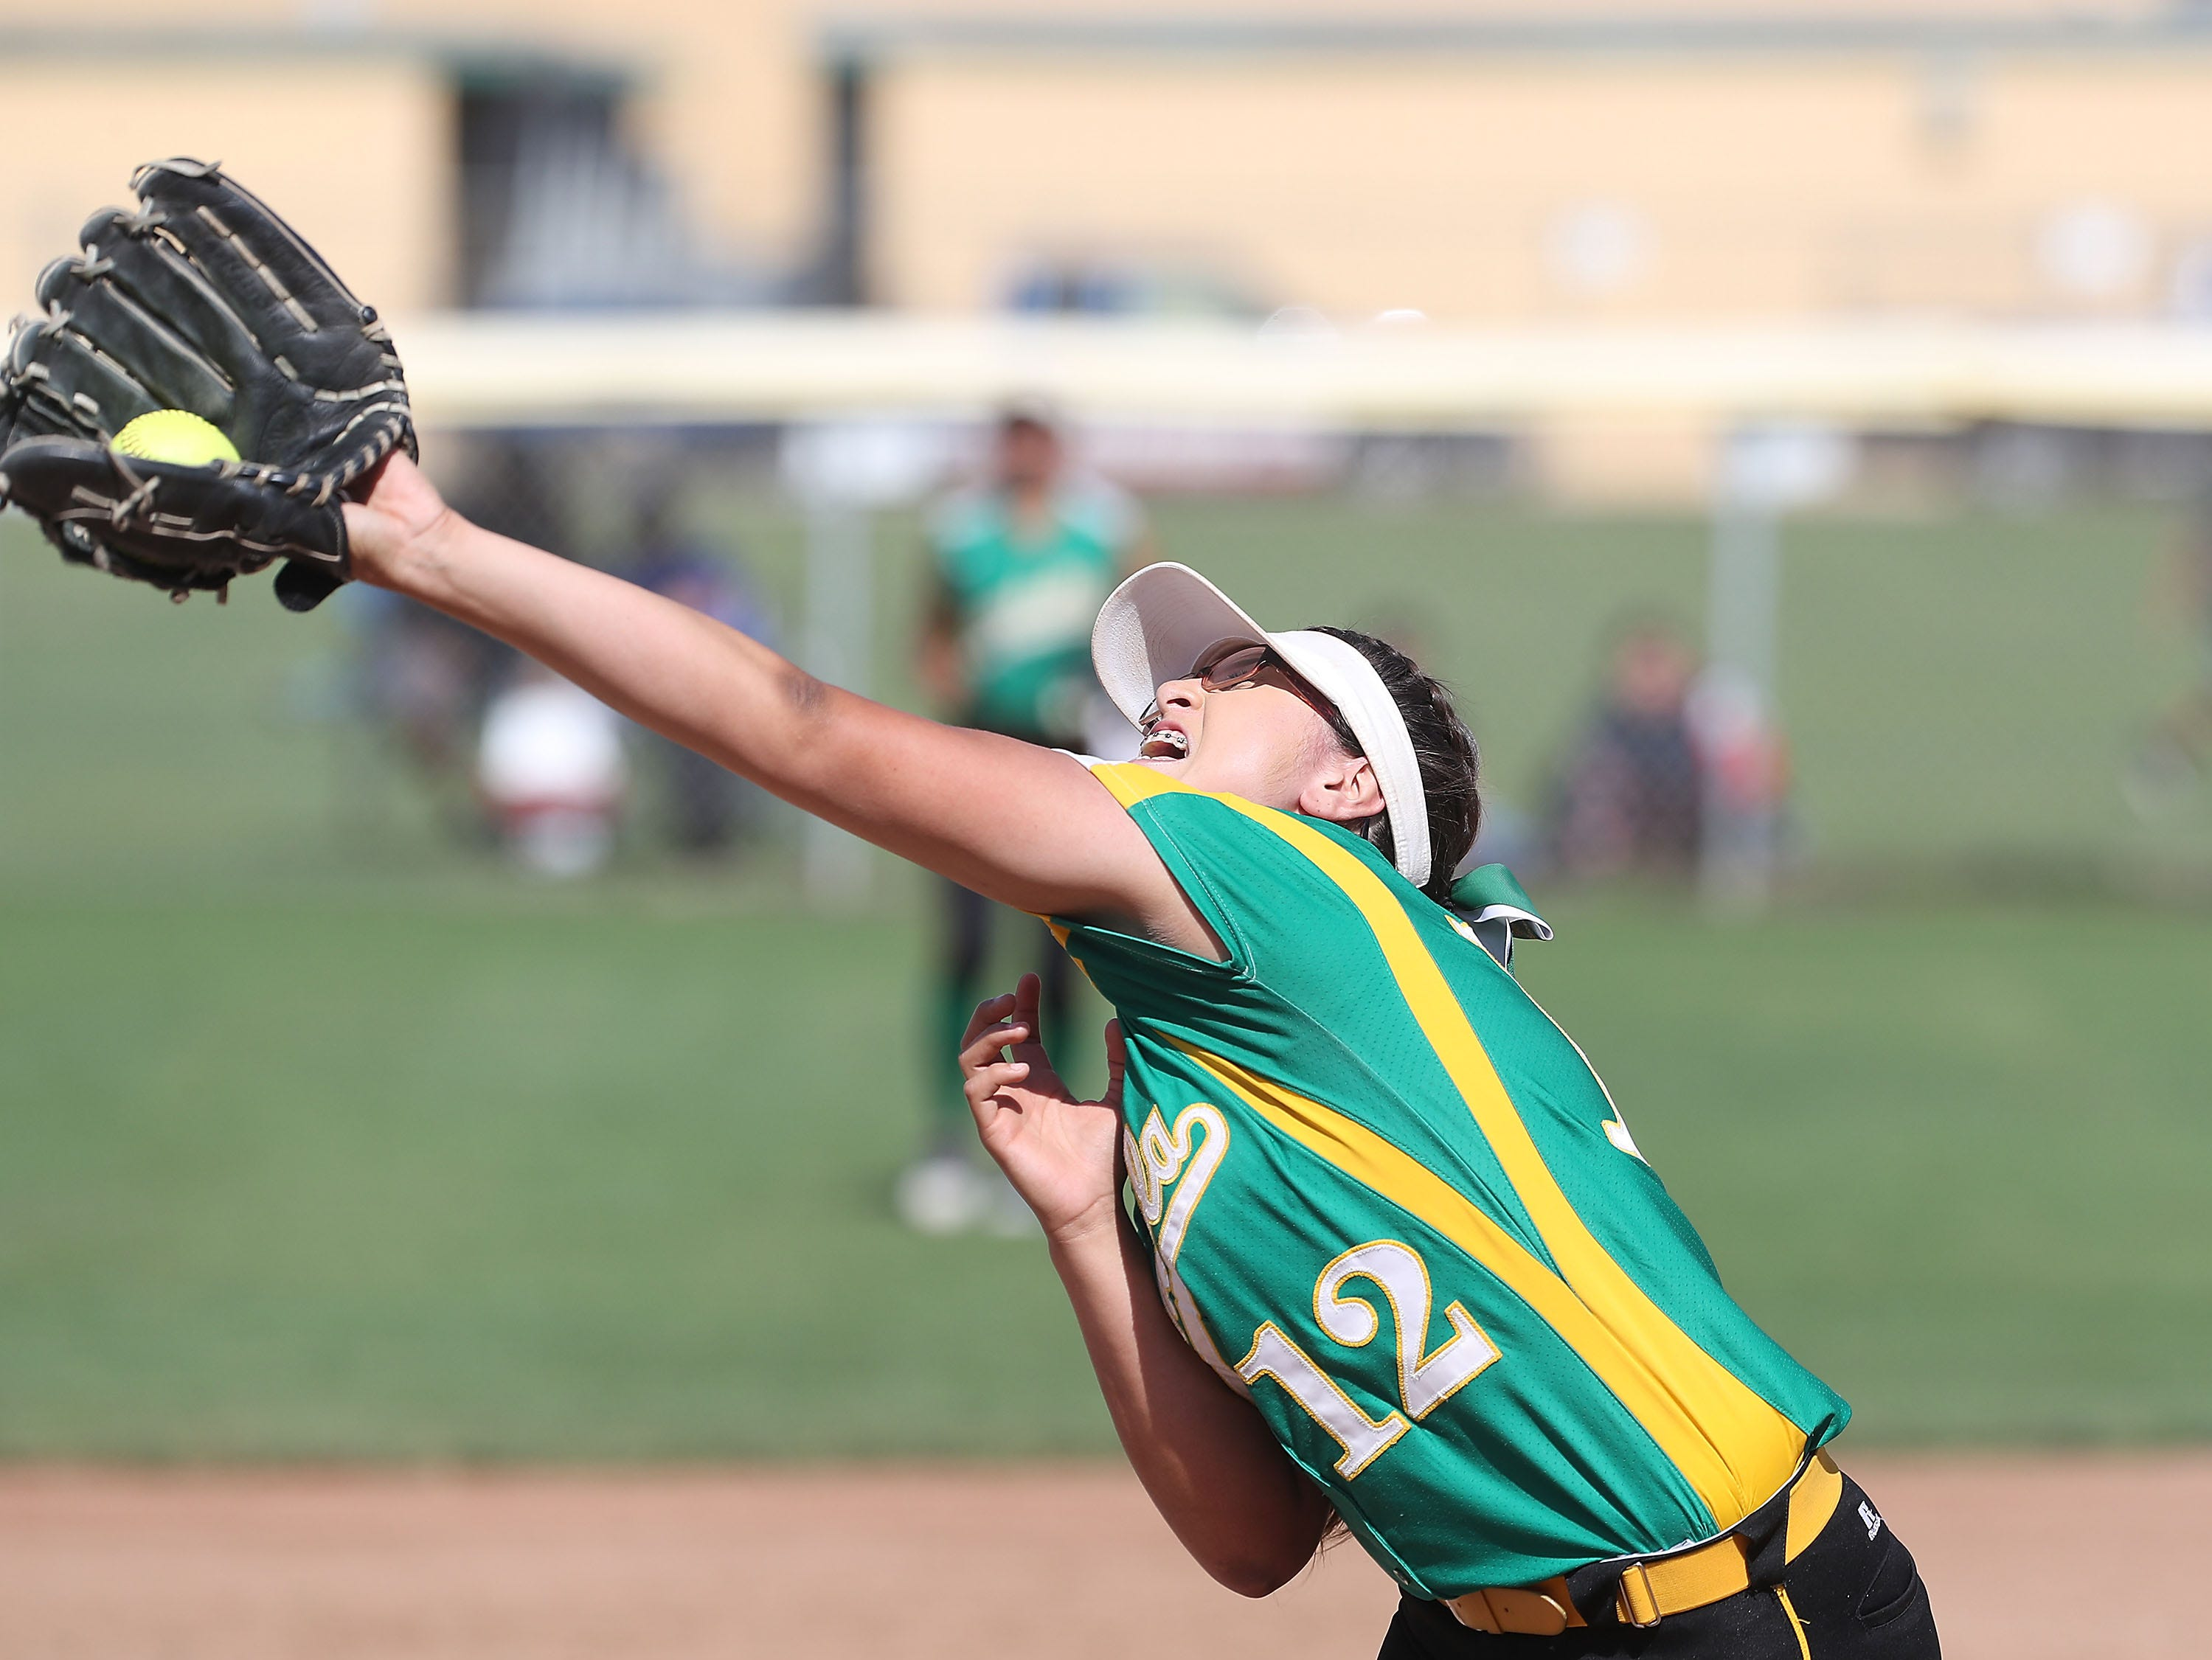 Paula Martinez of Coachella Valley makes an out against Anaheim during the Arabs loss, May 9, 2019.